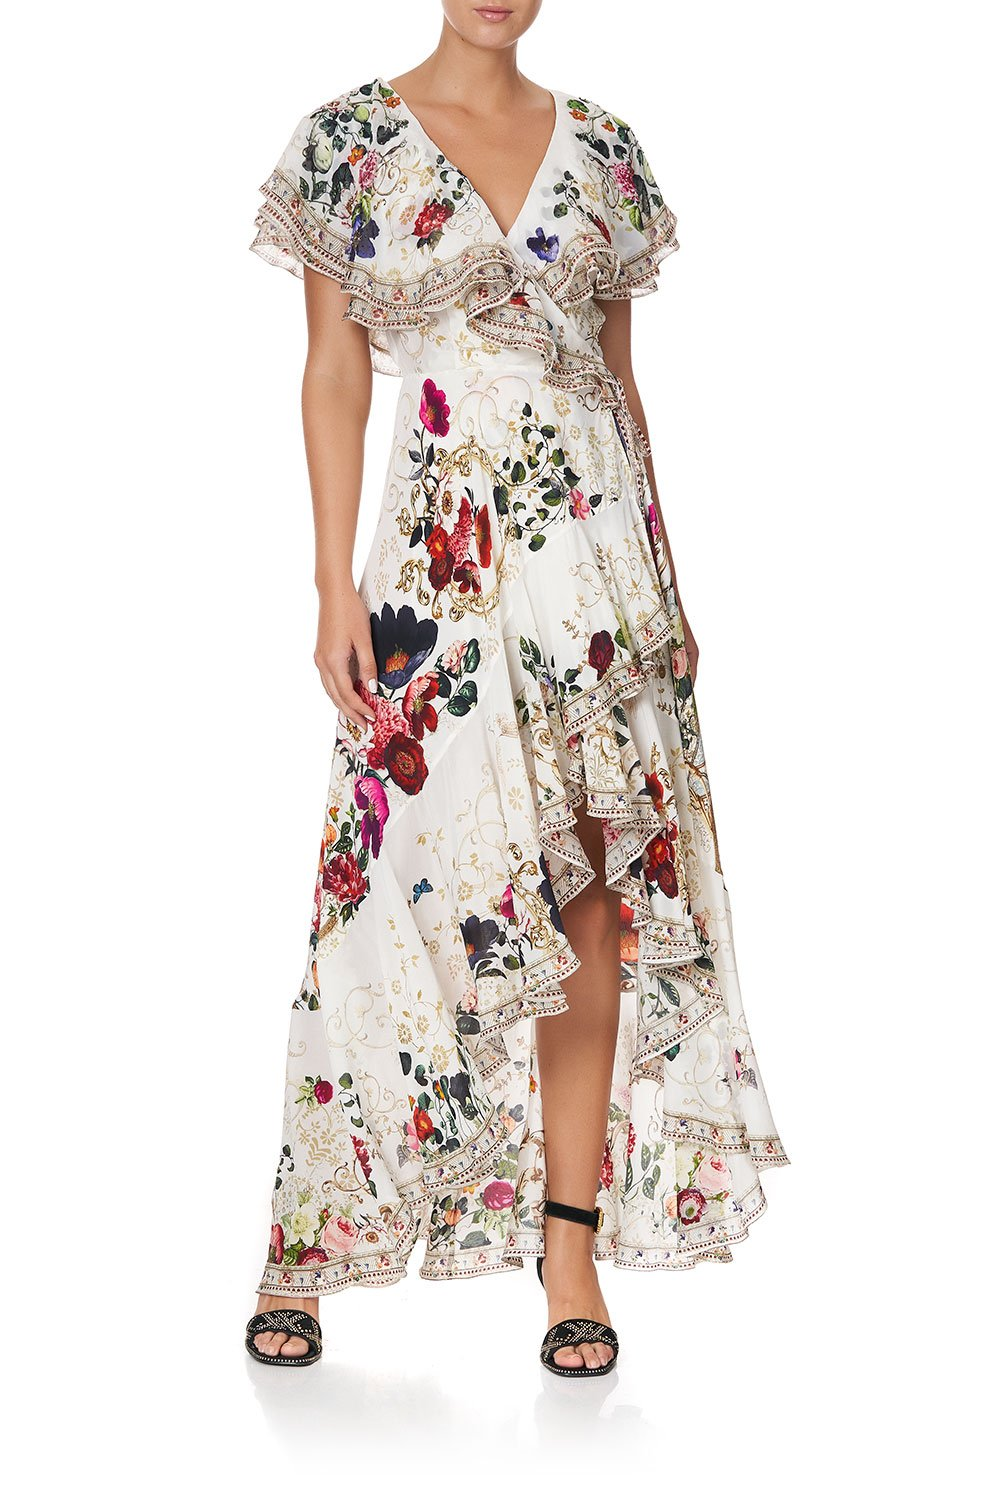 FRILL SLEEVE LONG DRESS FAIRY GODMOTHER